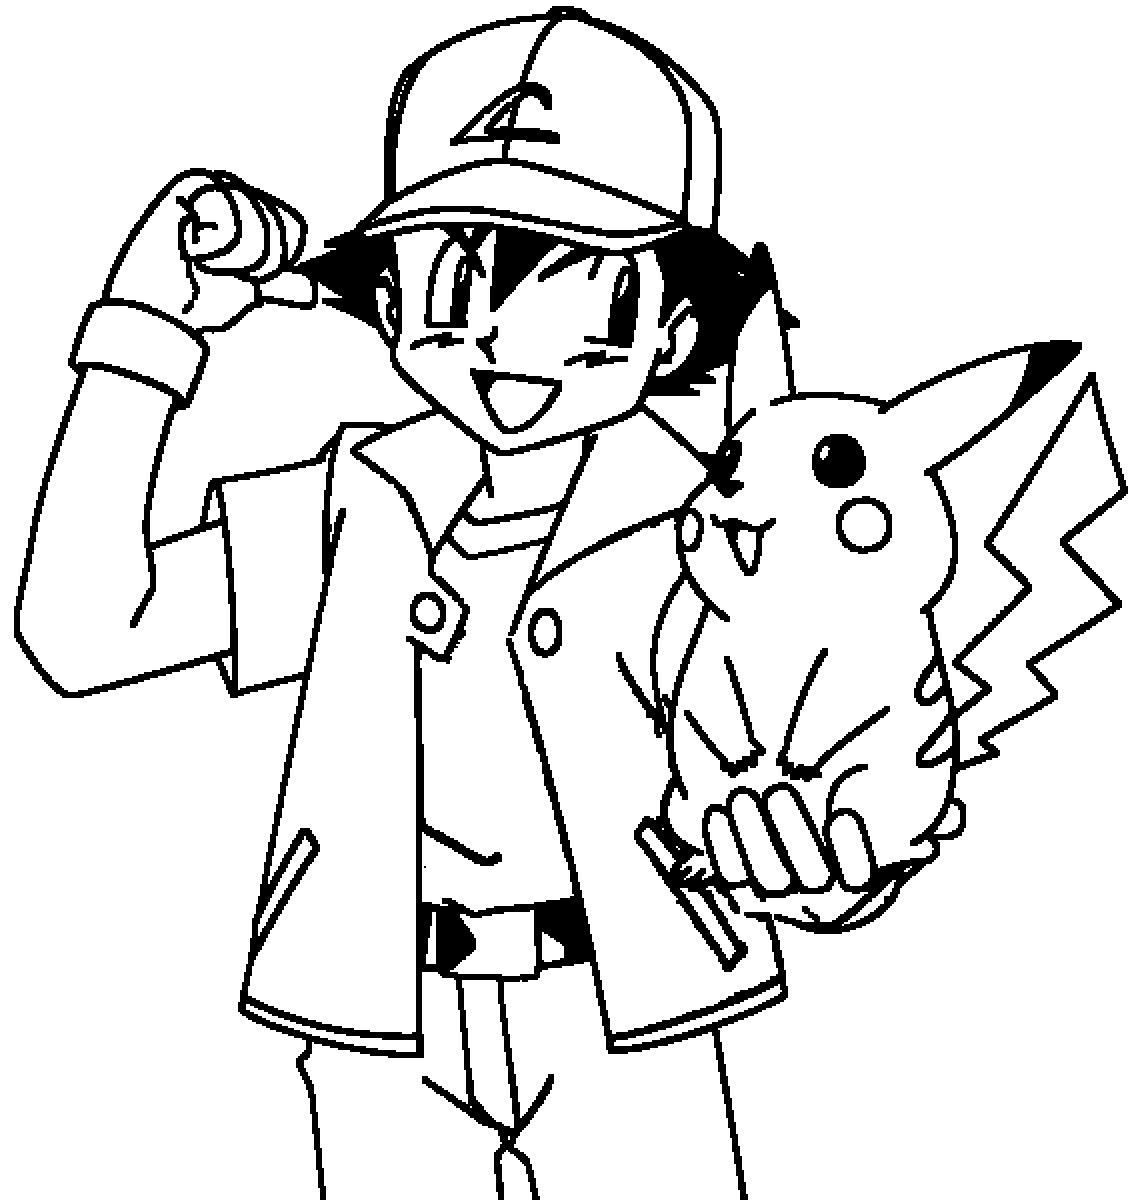 Pikachu Coloring Sheets for Kids to Print